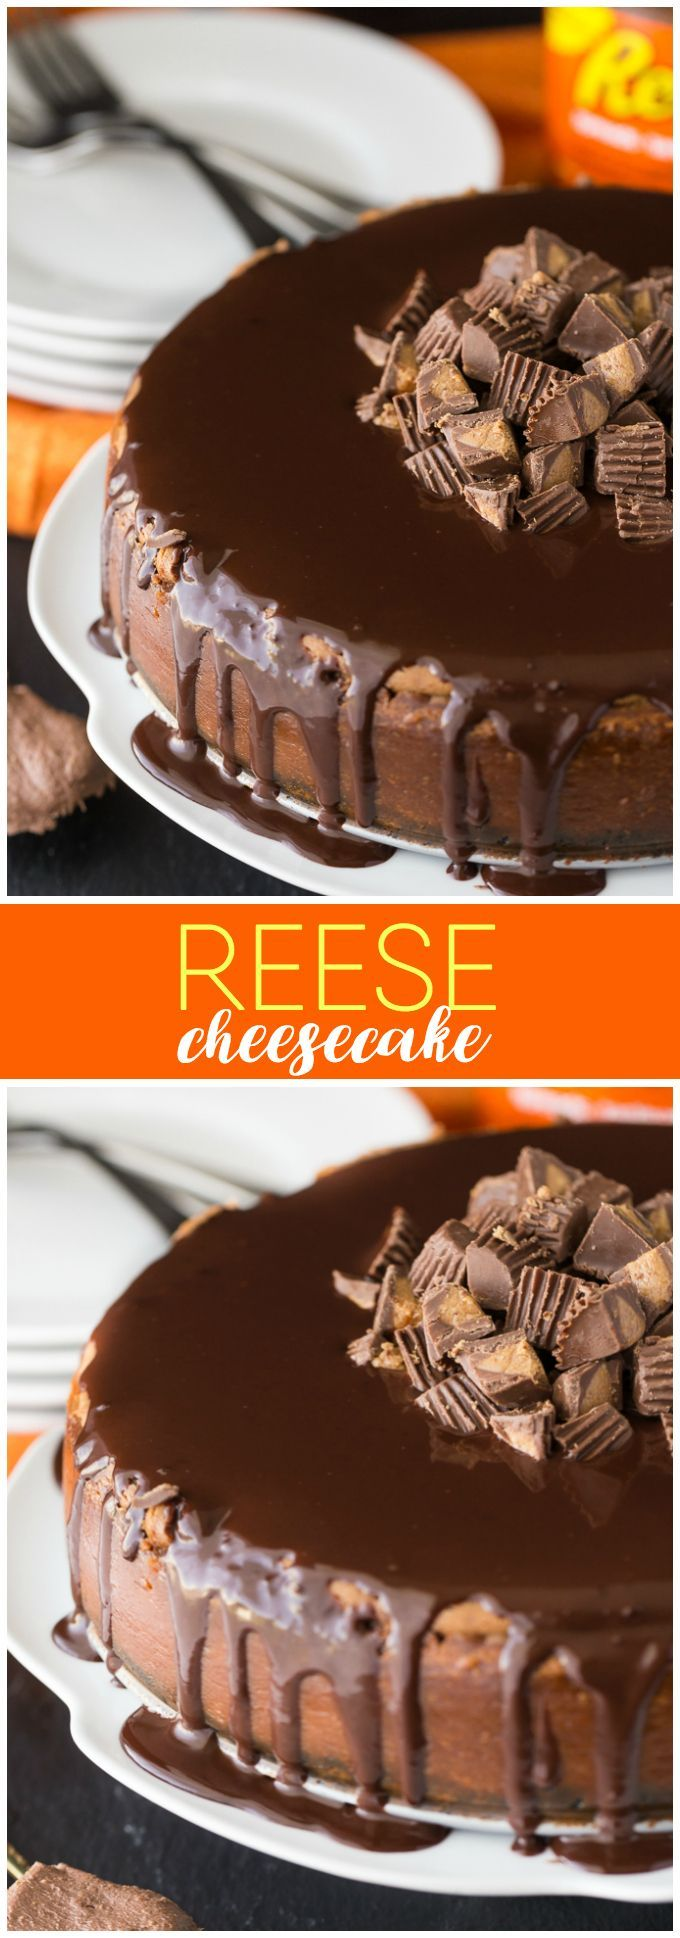 Reese Cheesecake - So creamy, smooth and full of delicious chocolate peanut butter flavour! Each bite is a little bit of cheesecake heaven. #DoYouSpoon #ad